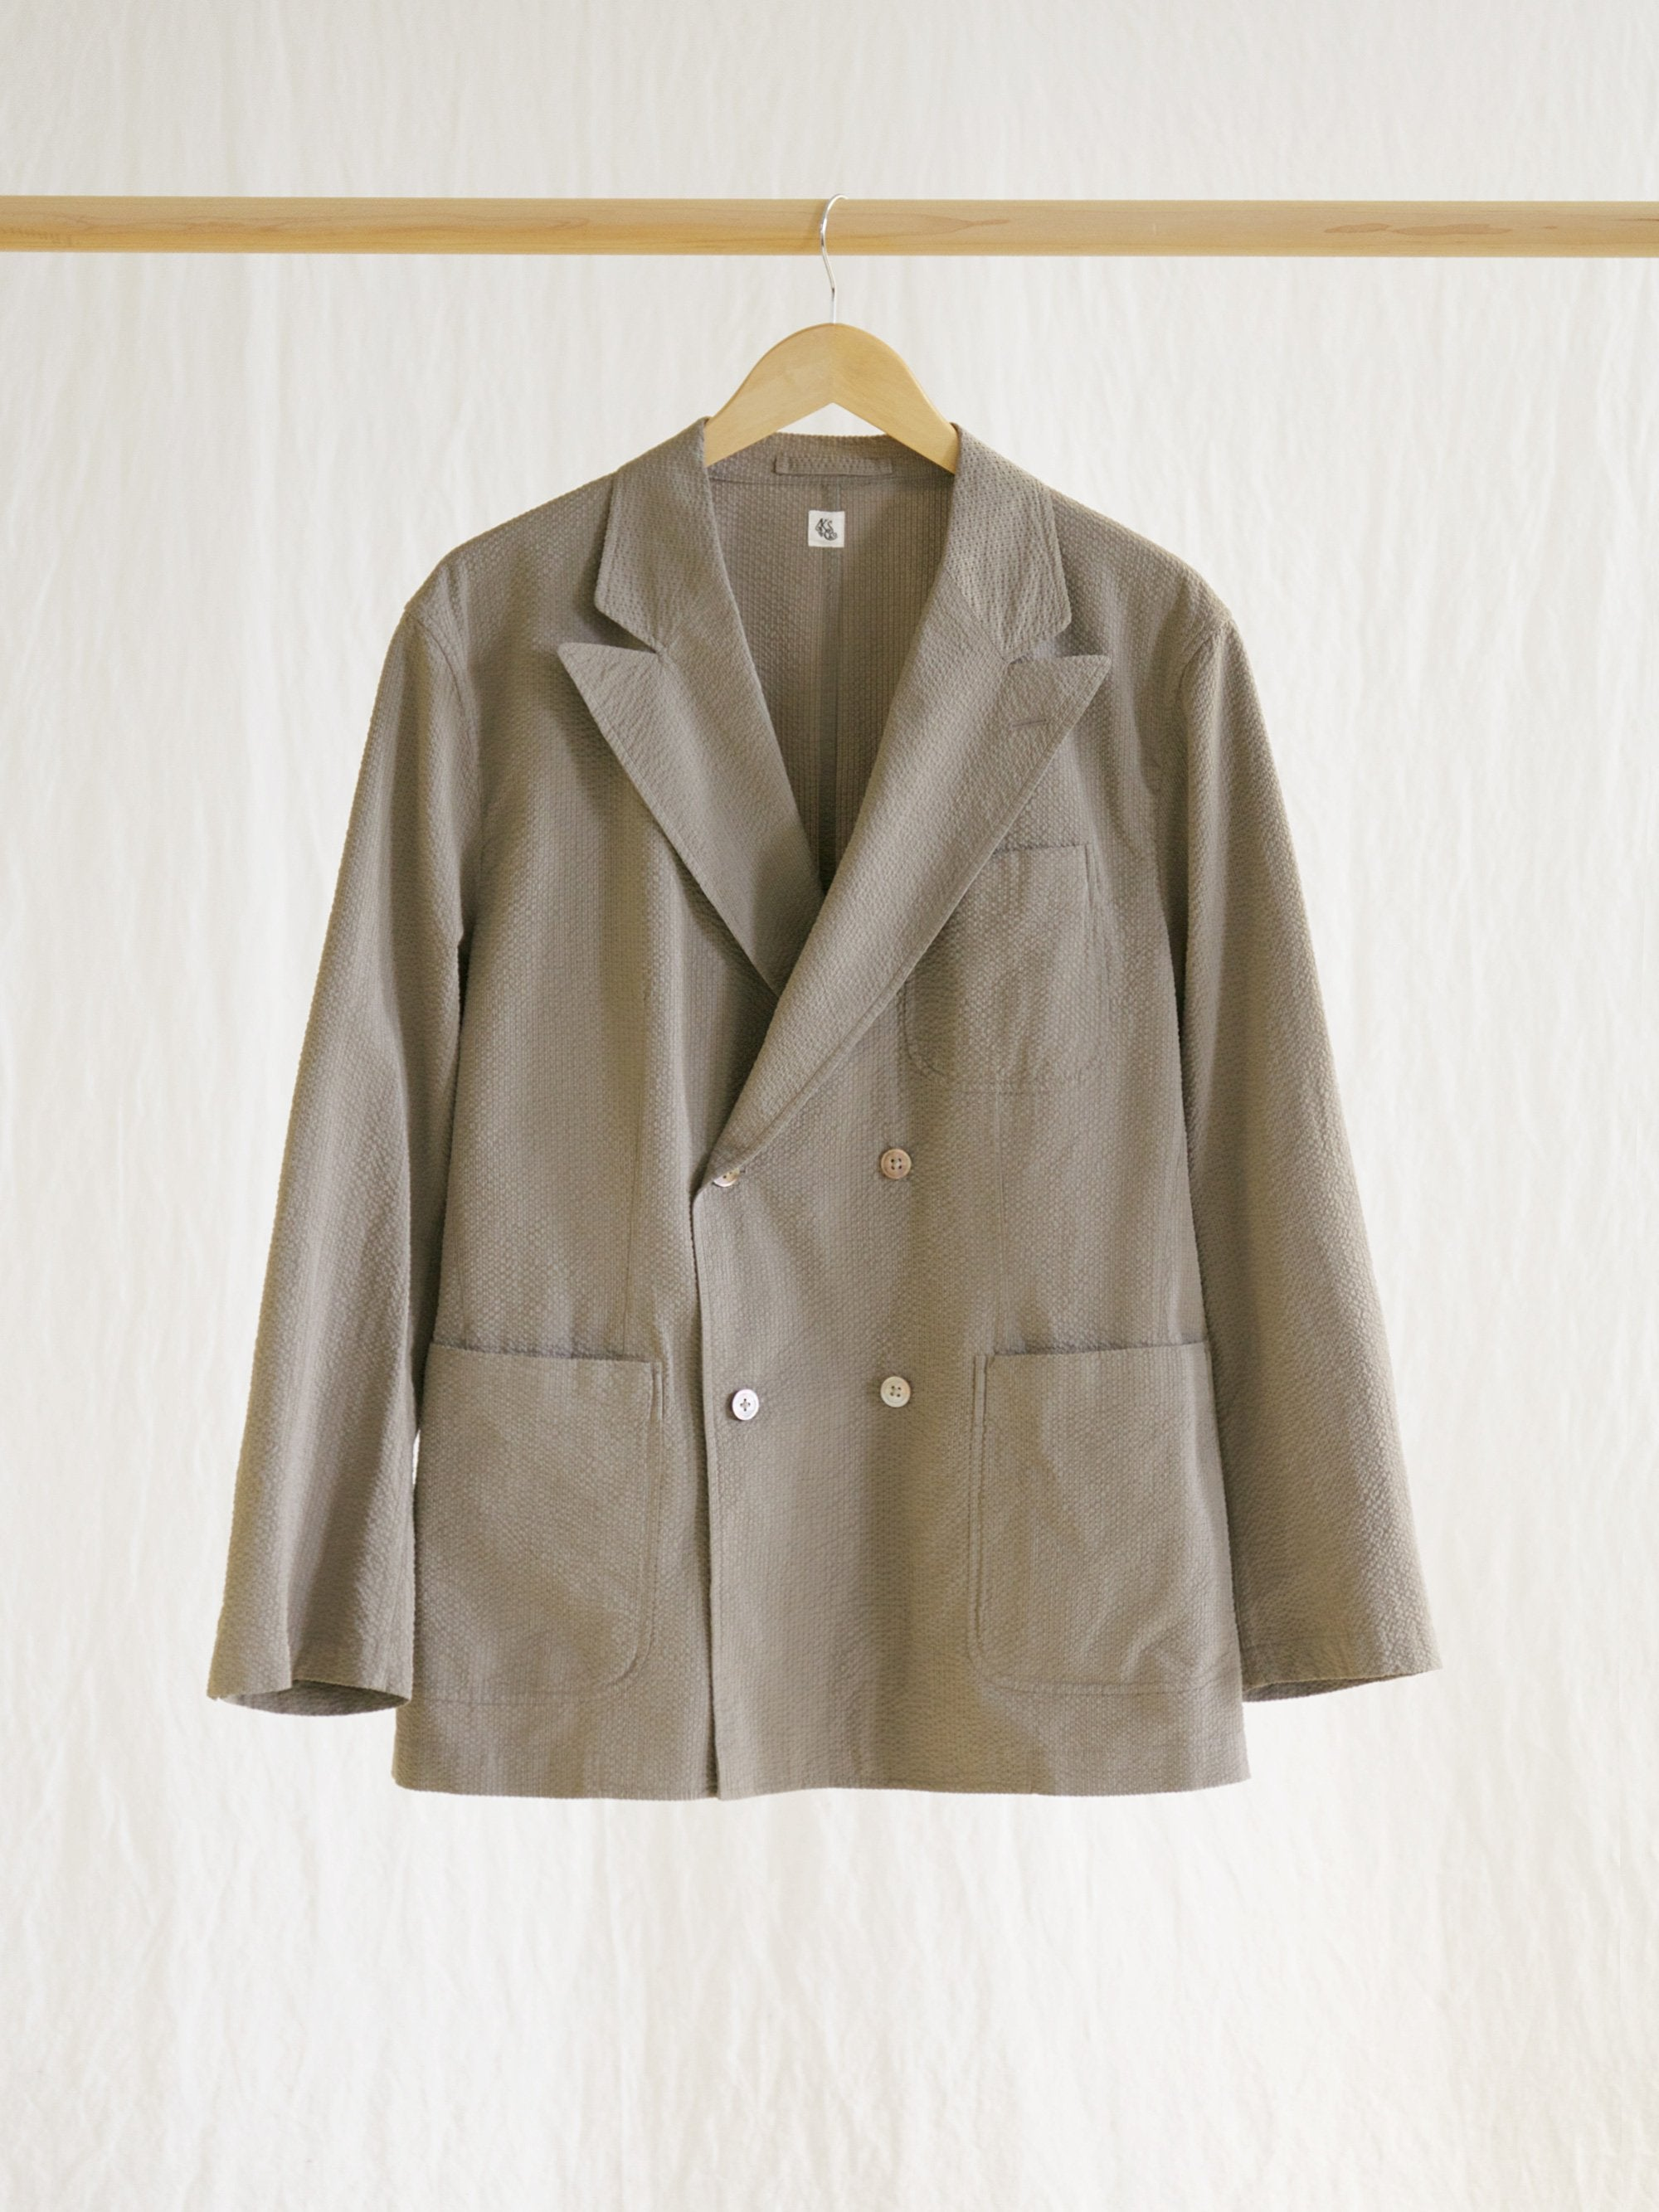 Namu Shop - Kaptain Sunshine Fieldwrap Double-Breasted Jacket - Beige x Gray